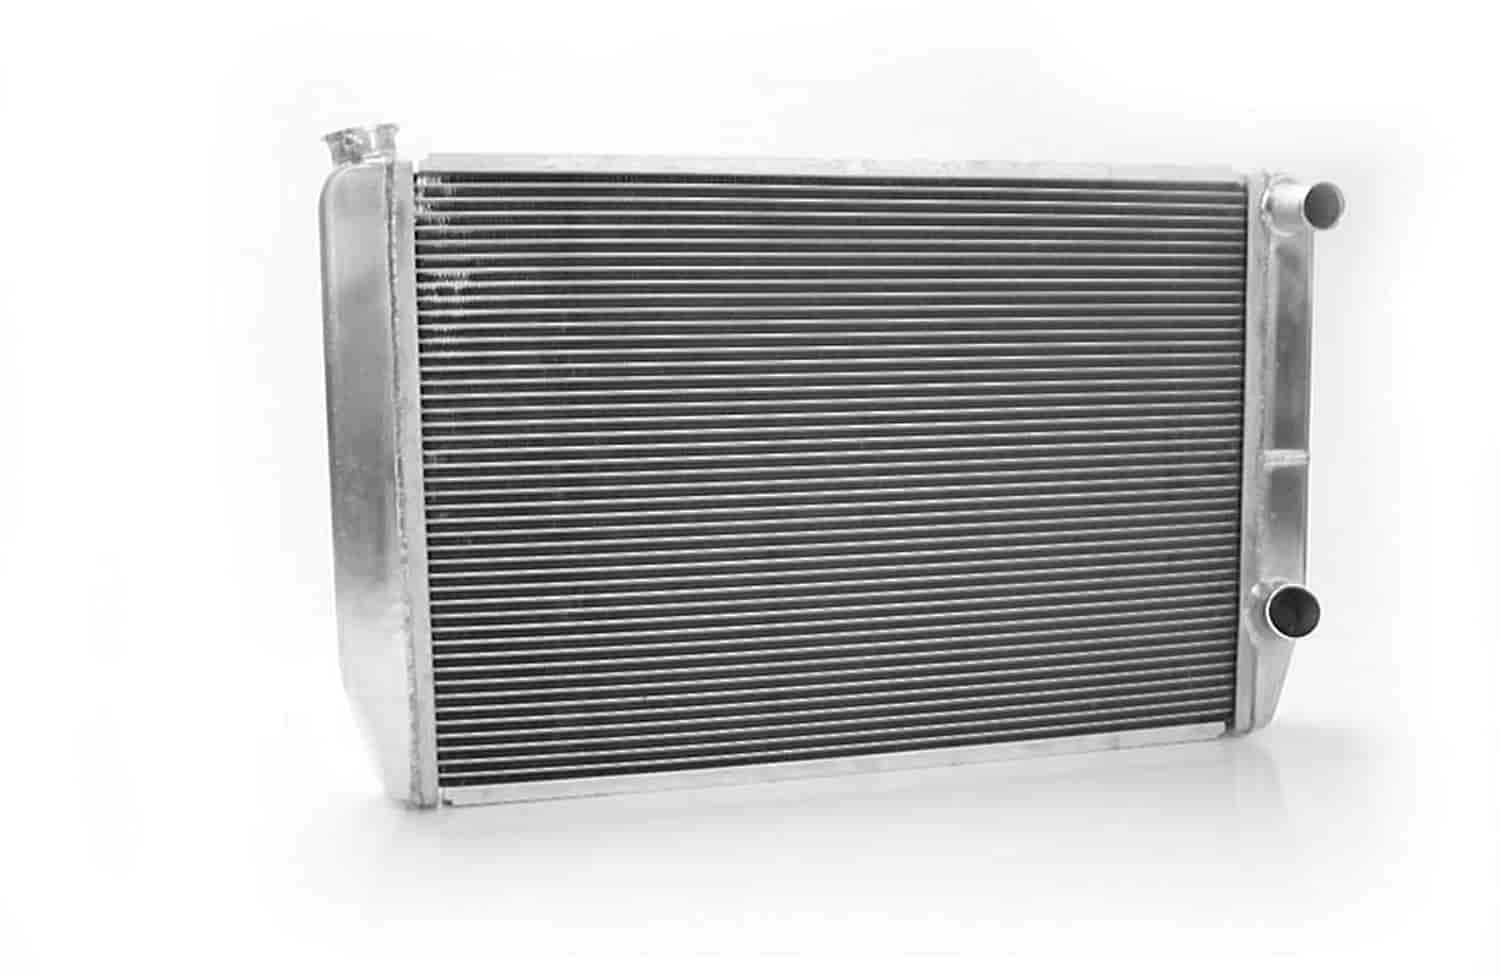 Griffin Radiators 1-58272-X